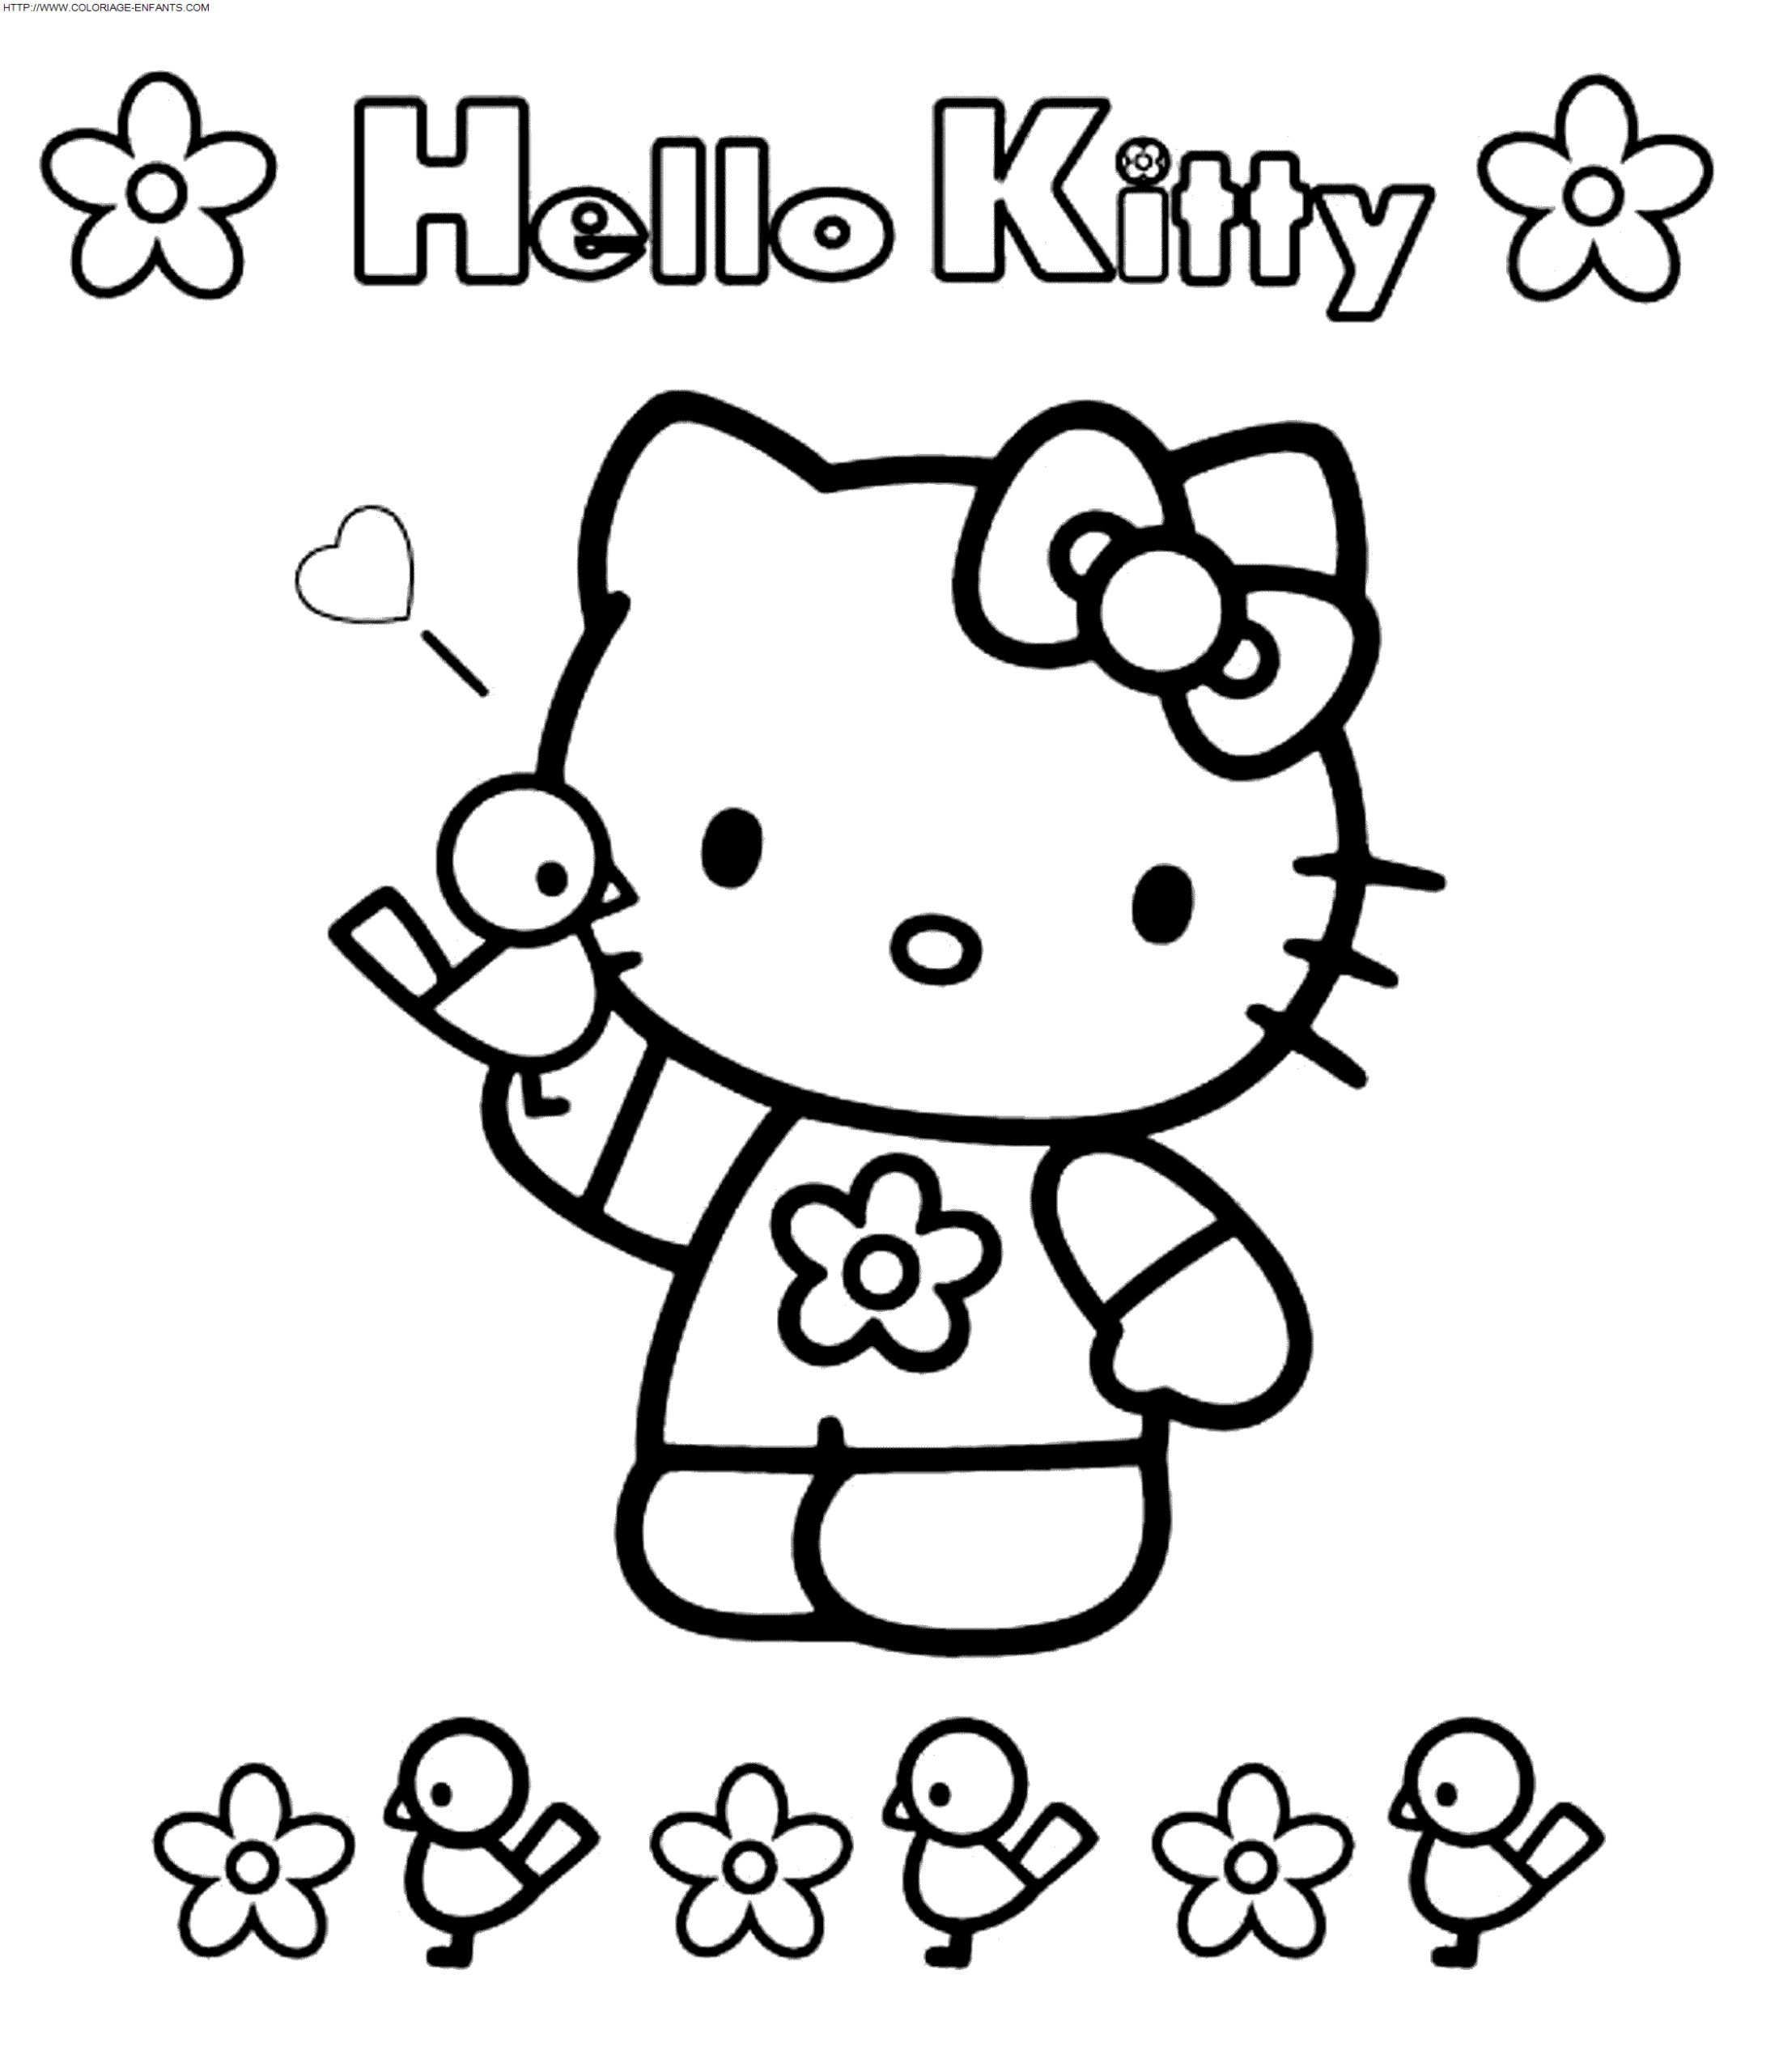 Cool Coloriage Hello Ketty 66 Dans Coloriage Books with Coloriage Hello Ketty